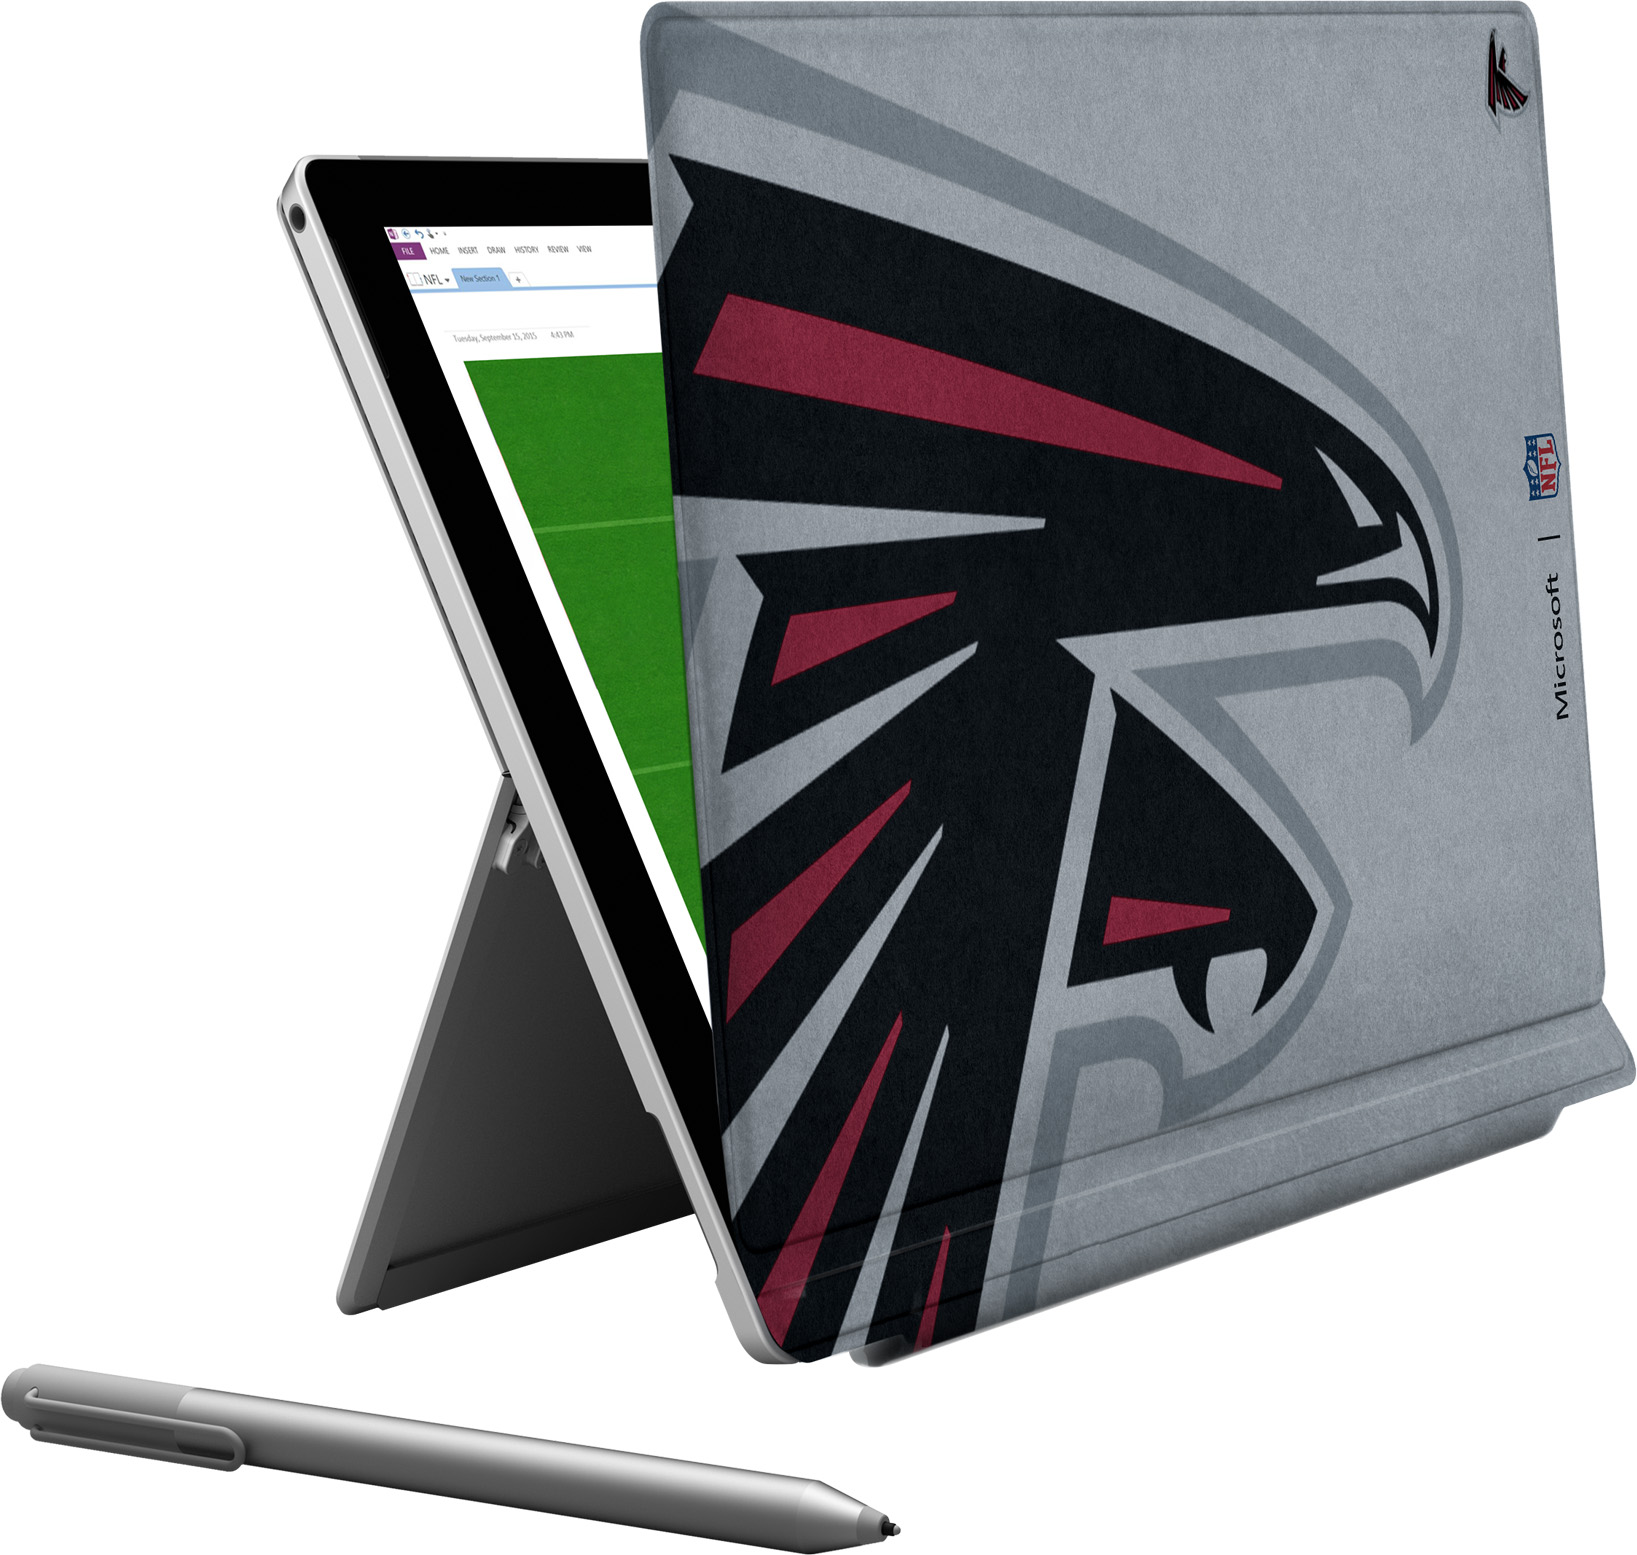 Microsoft Surface Pro 4 Atlanta Falcons Type Cover